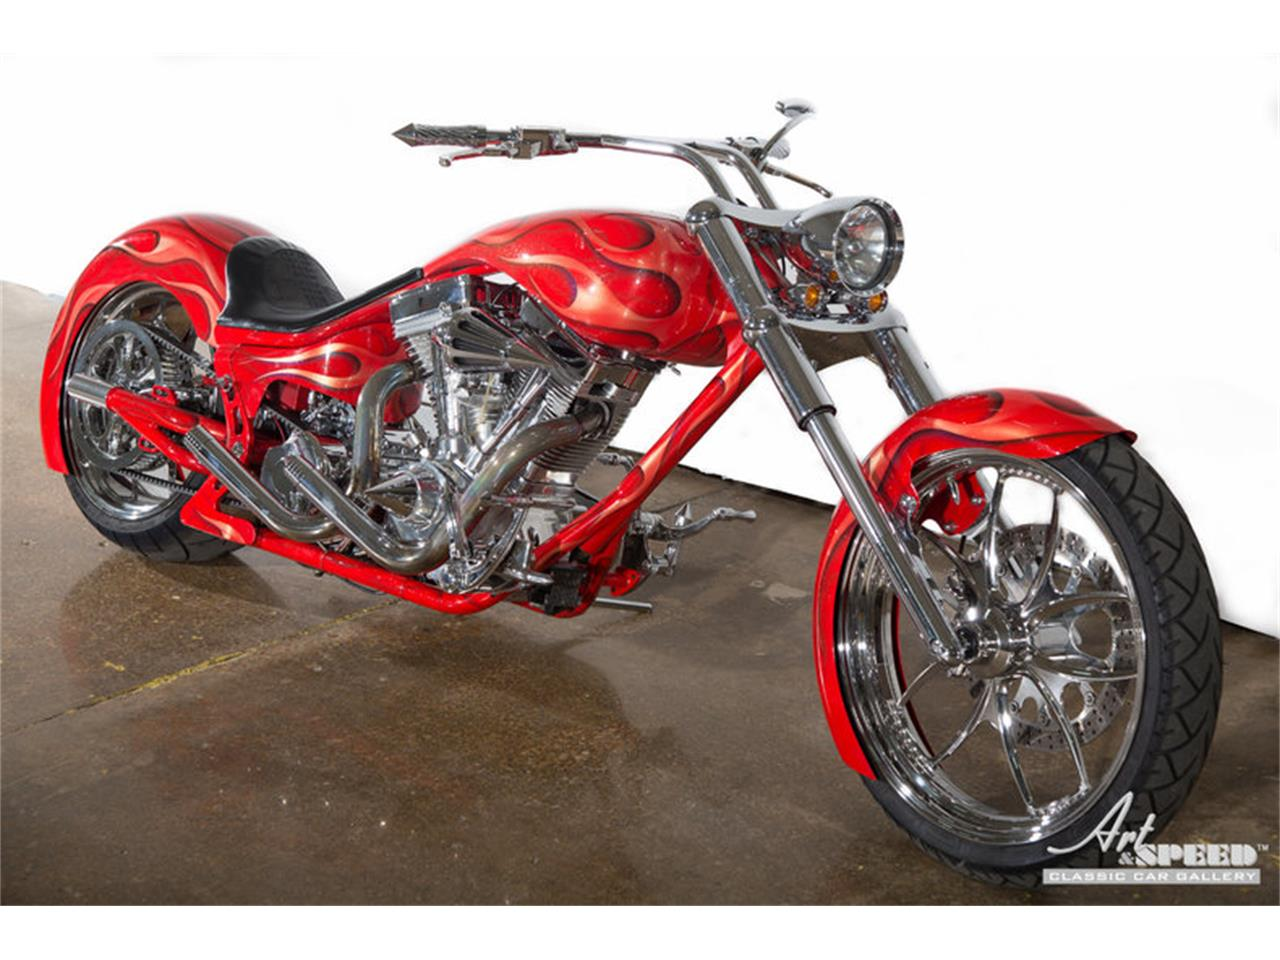 Large Picture of 2004 Italdesign Pro MC Custom Chopper located in Tennessee - $19,900.00 Offered by Art & Speed - DUSV